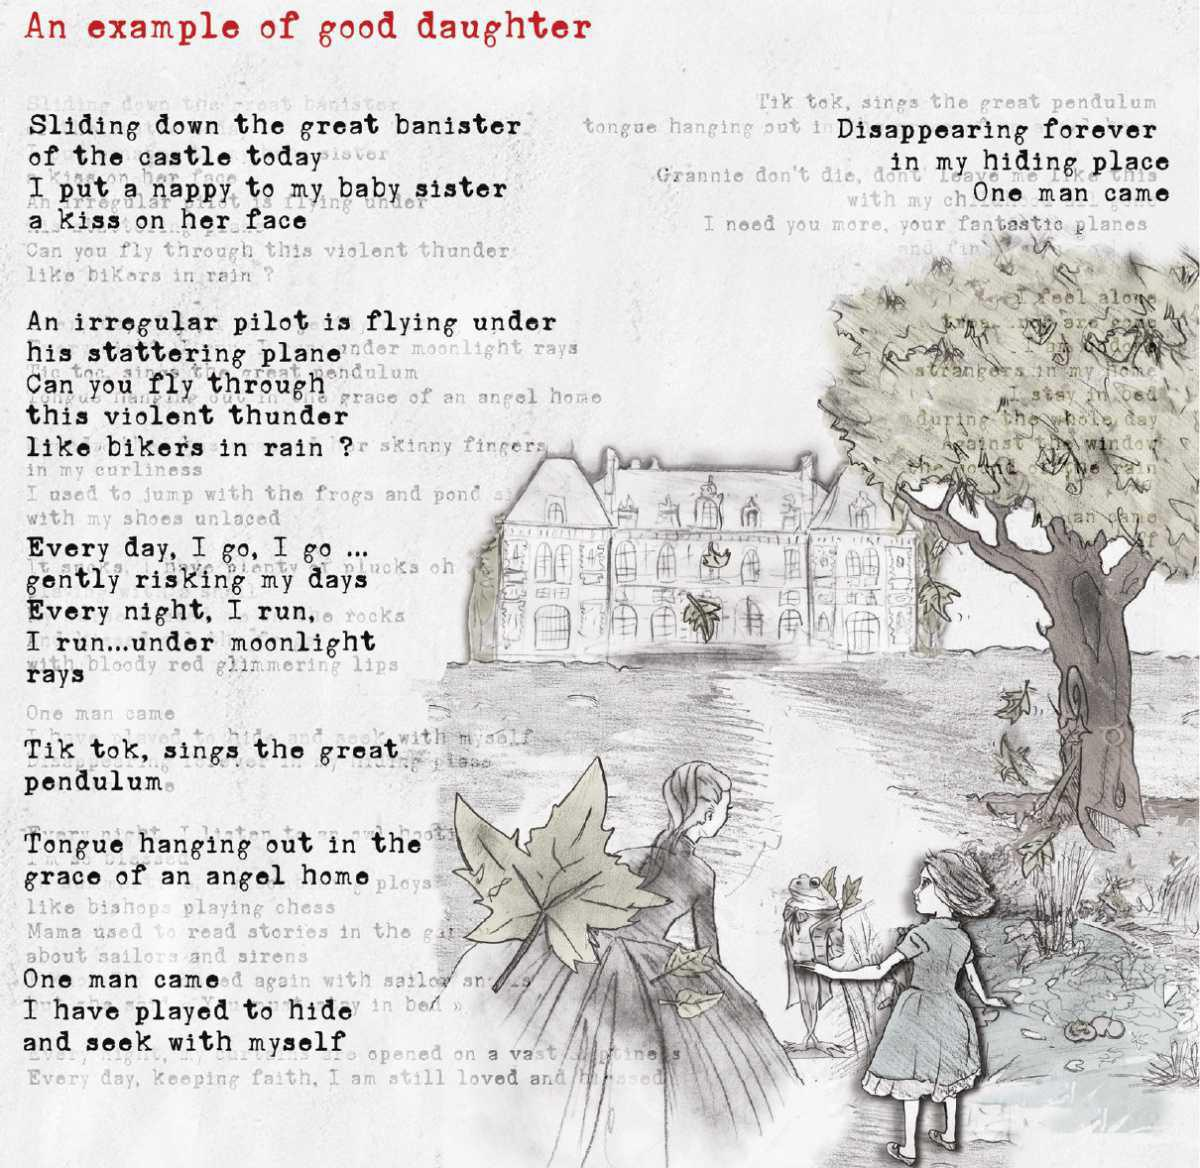 AN EXAMPLE OF GOOD DAUGHTER by Mélanie Destroy (FR)